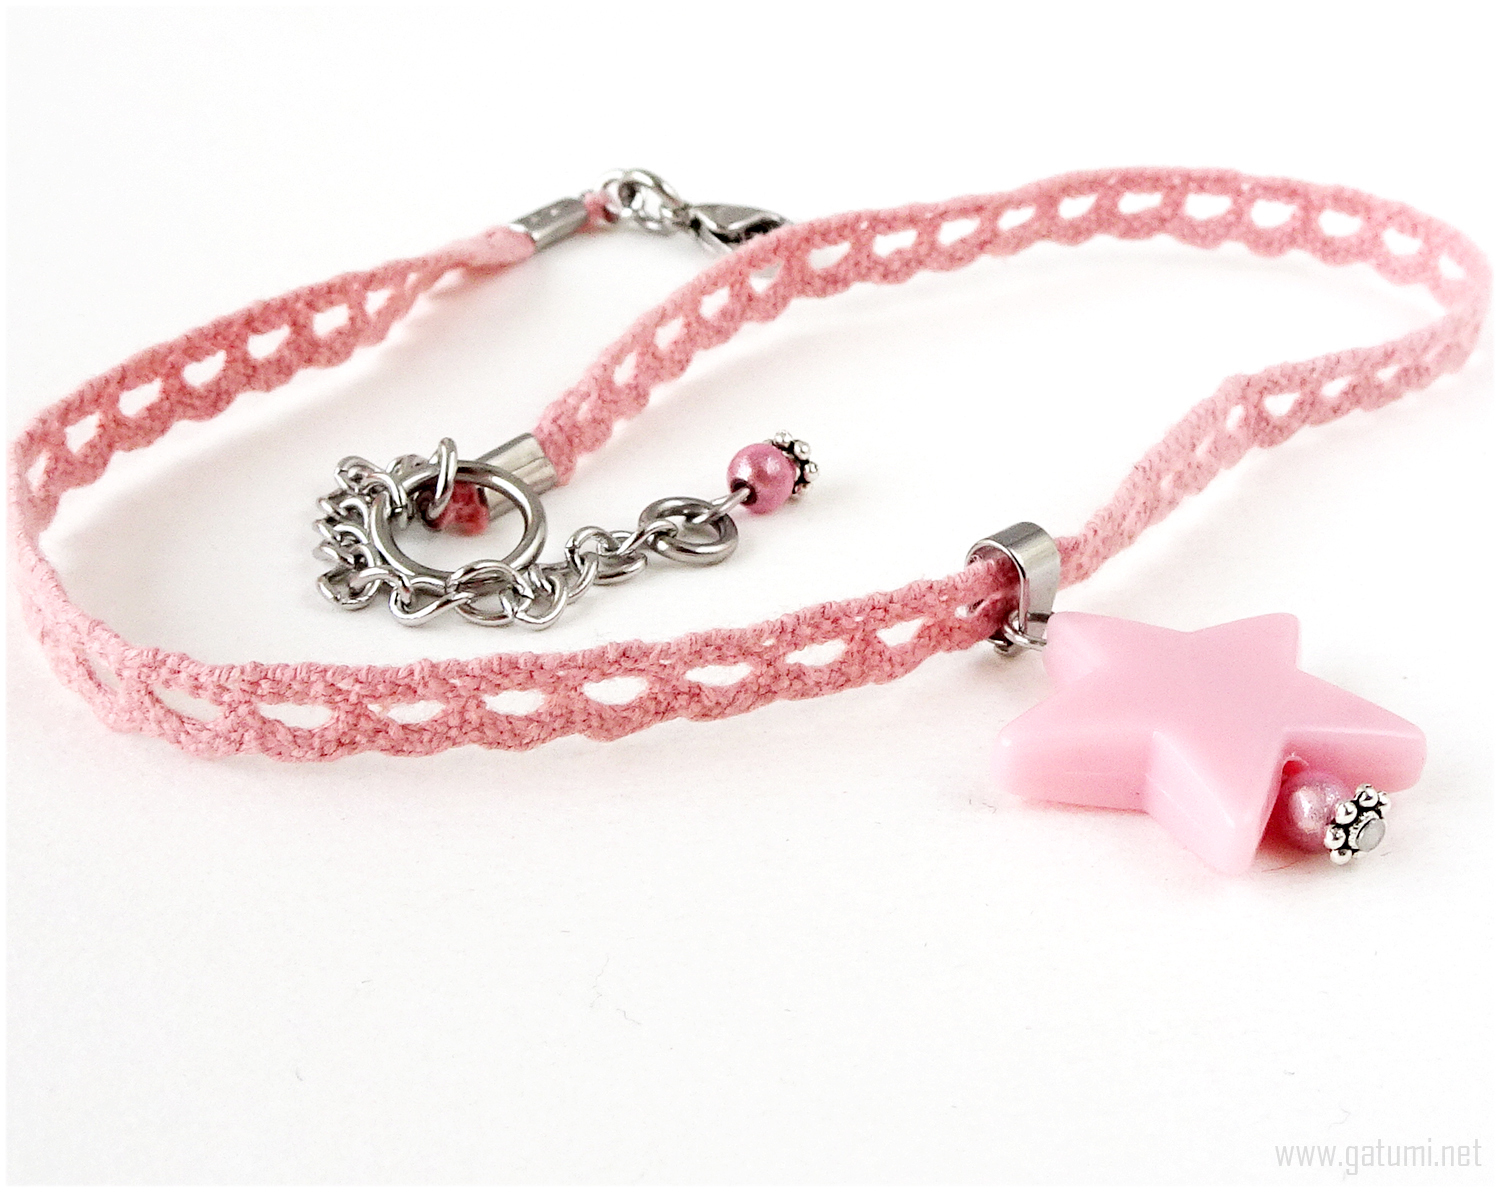 Pink Lace Choker with Star Pendant, Pastel Goth, Kawaii Jewelry, Gatumi